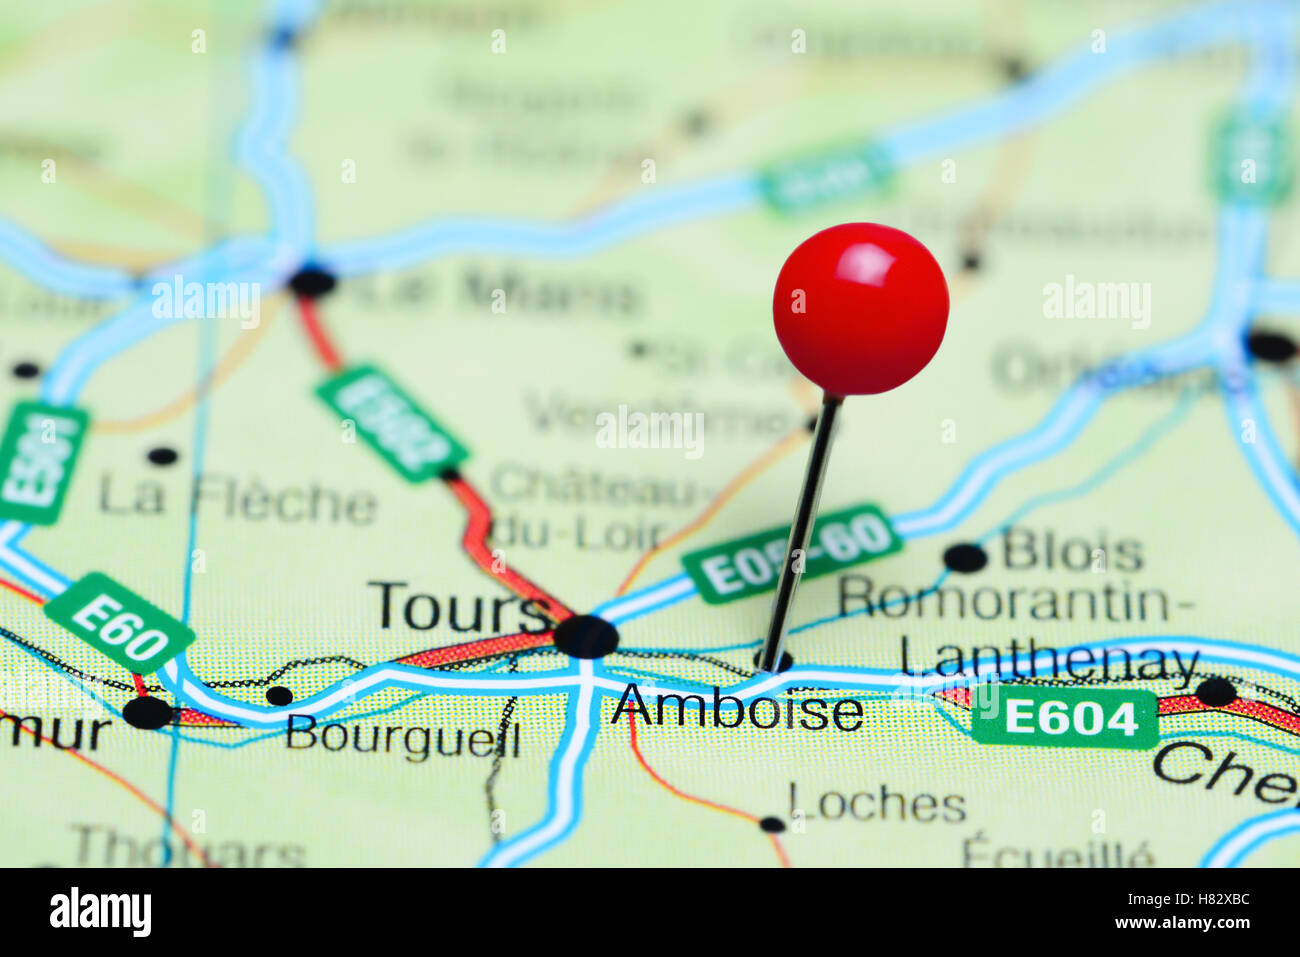 Amboise France Map.Amboise Pinned On A Map Of France Stock Photo 125454432 Alamy